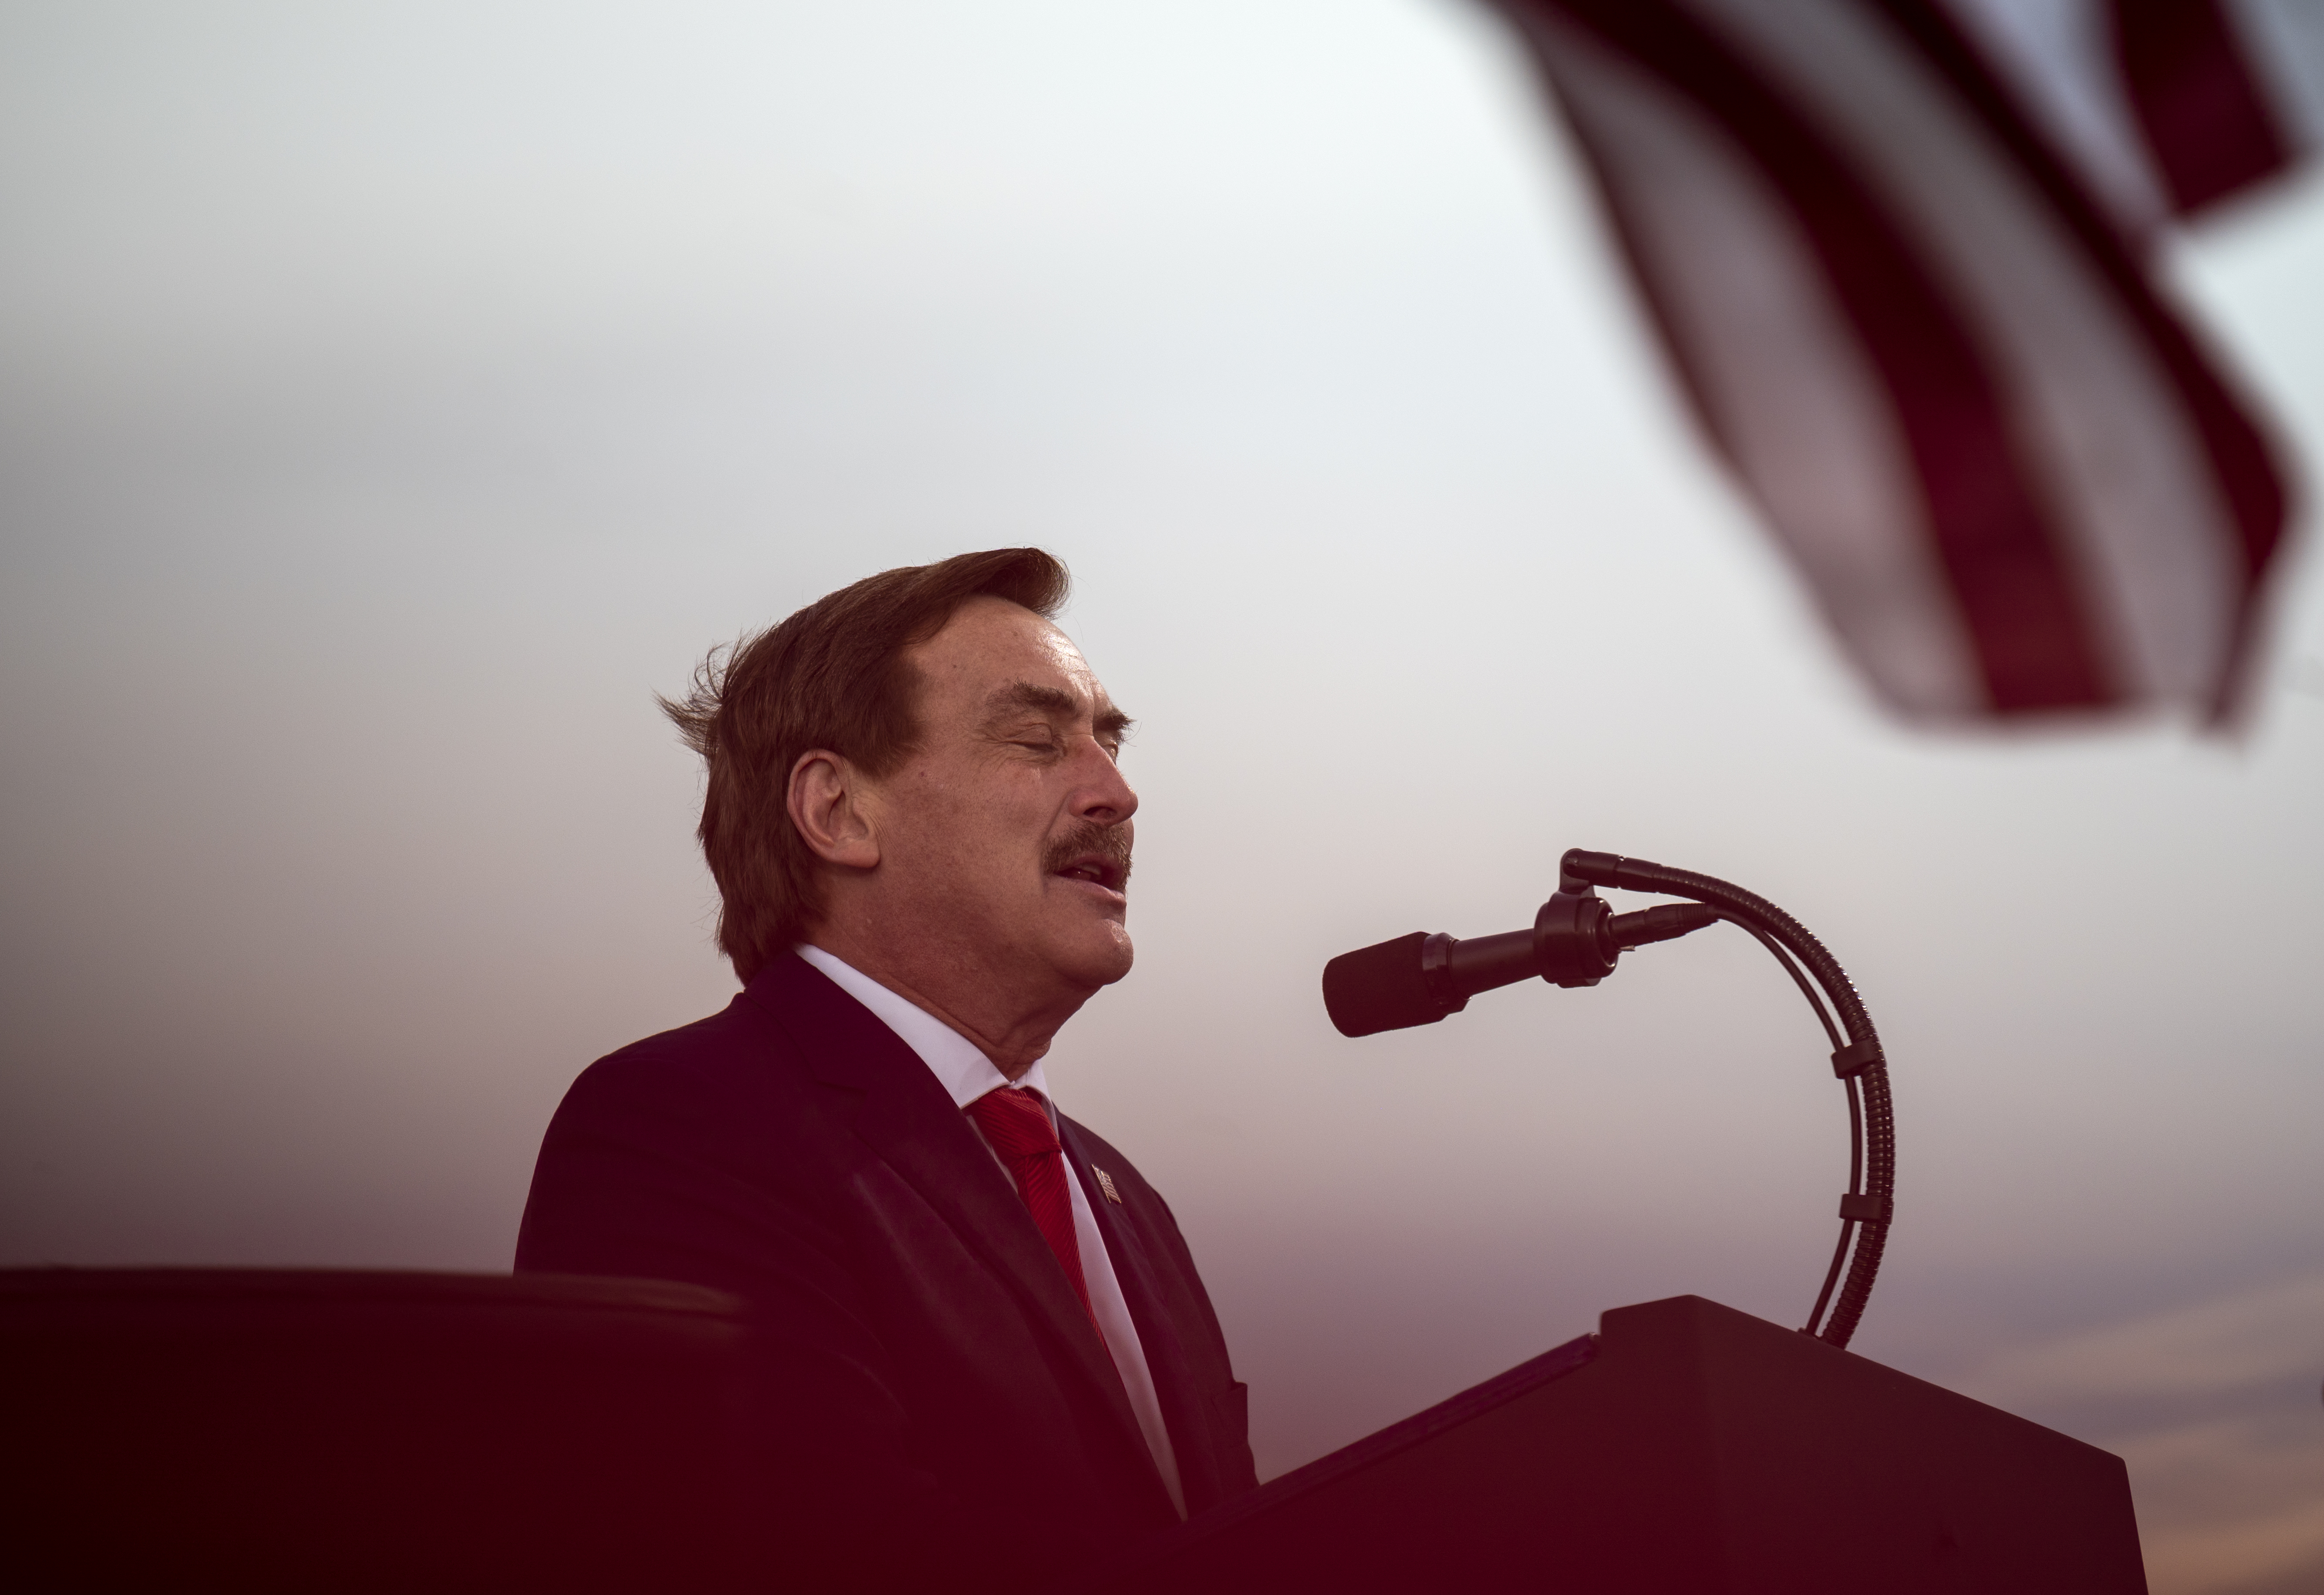 Mike Lindell's eyes are closed while he stands outdoor at a lectern against a twilight sky